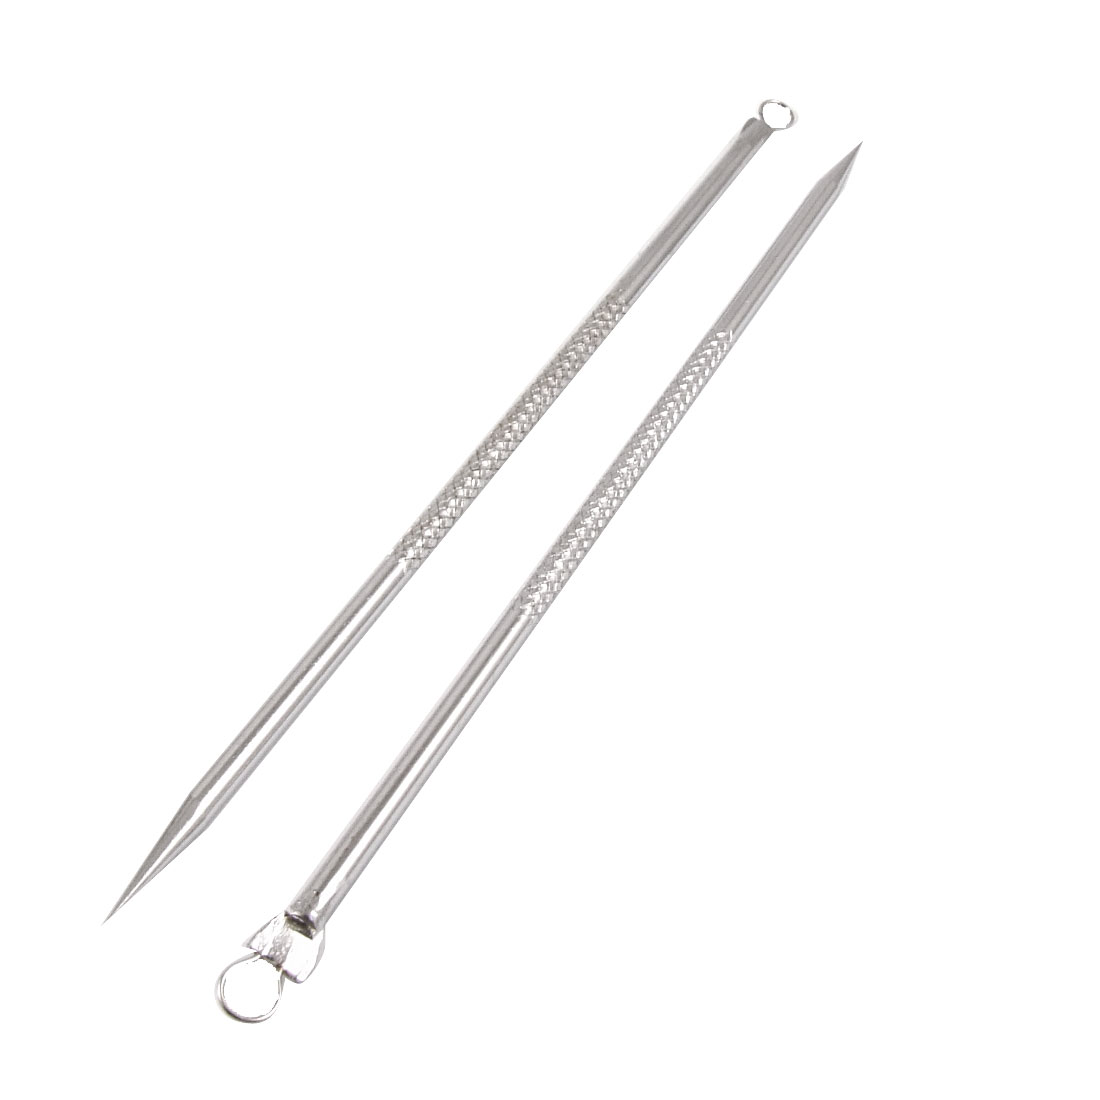 "2 Pcs Metal Blackhead Extractor Acne Remover Needles 4.5"" w Holder Case"